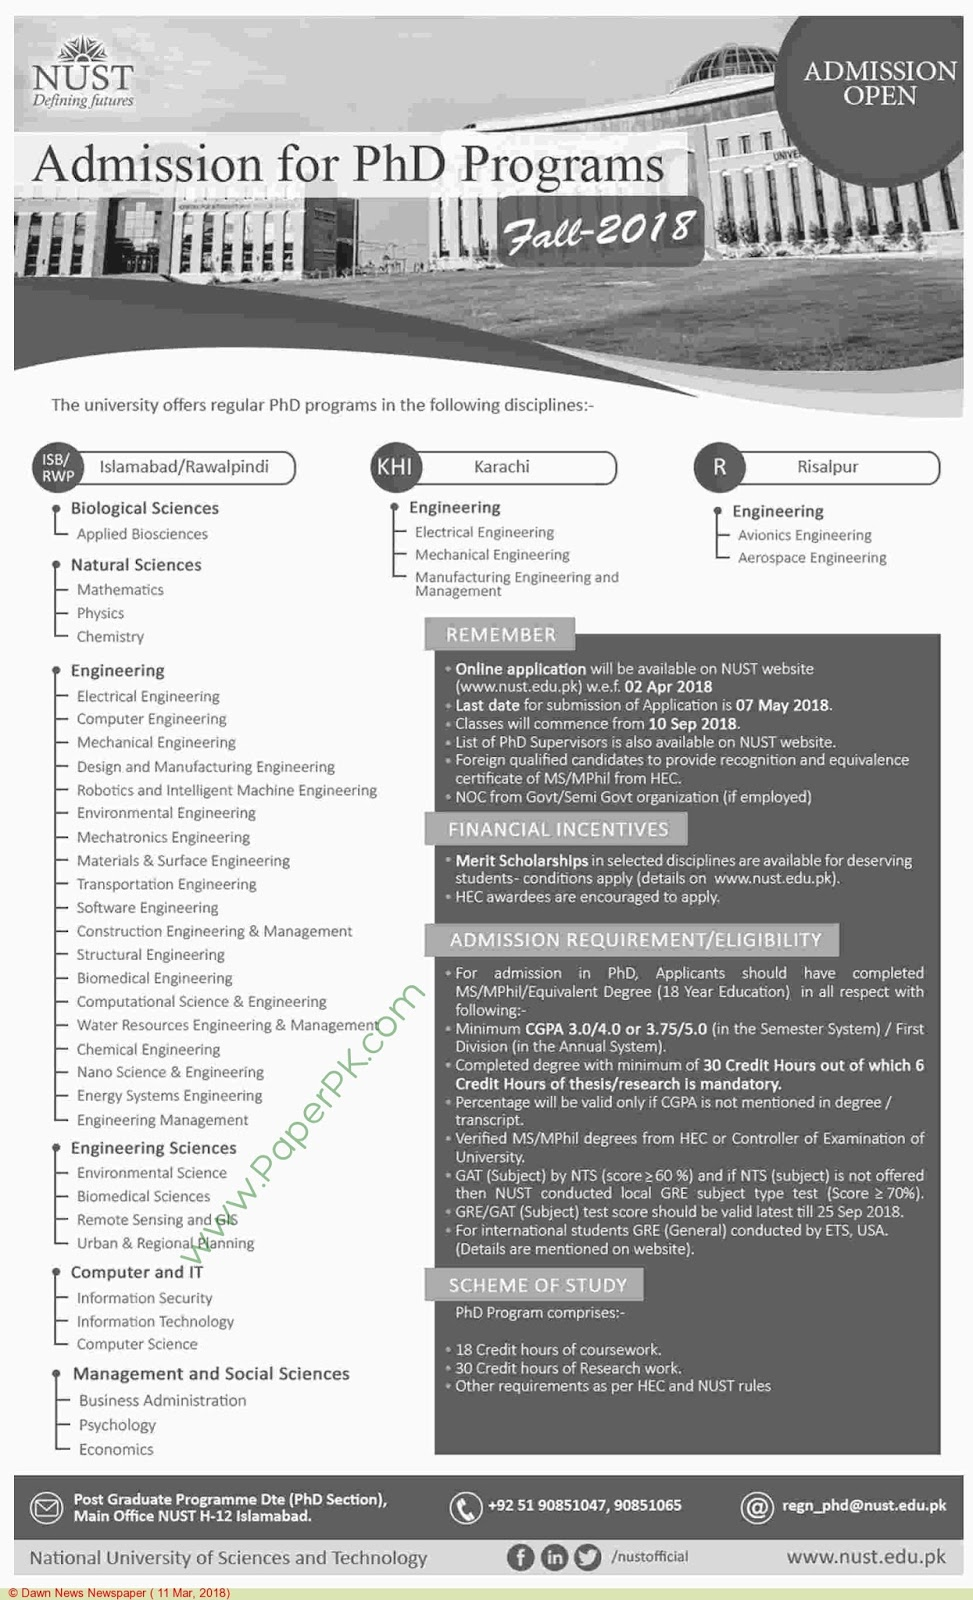 National University of Sciences & Technology PhD Admissions